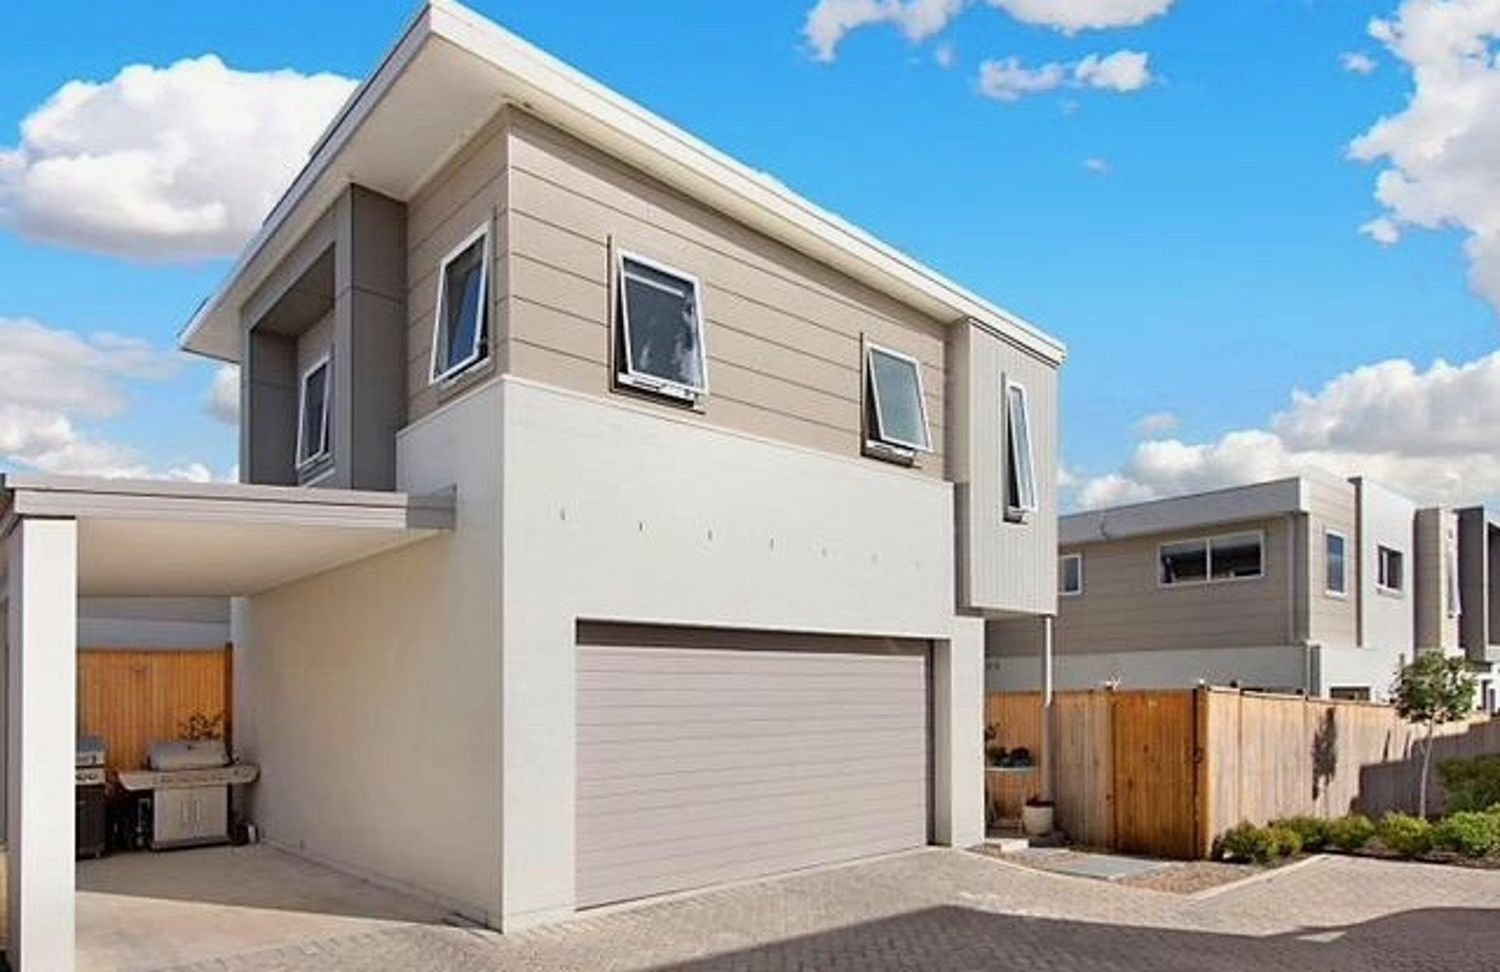 24 A Claret Street, The Ponds NSW 2769, Image 0